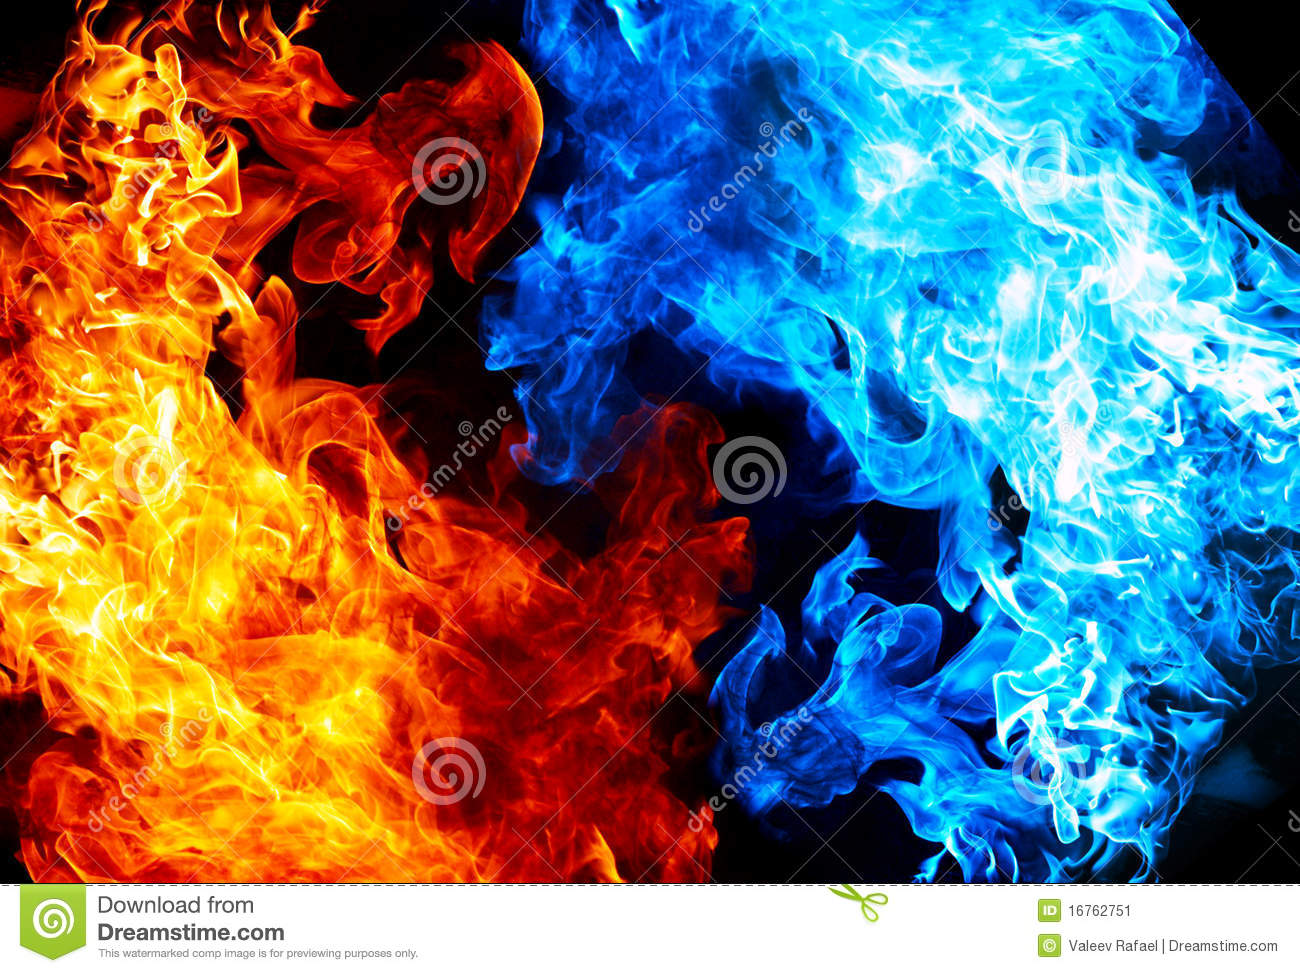 1300x973 - Red and Blue Fire 5